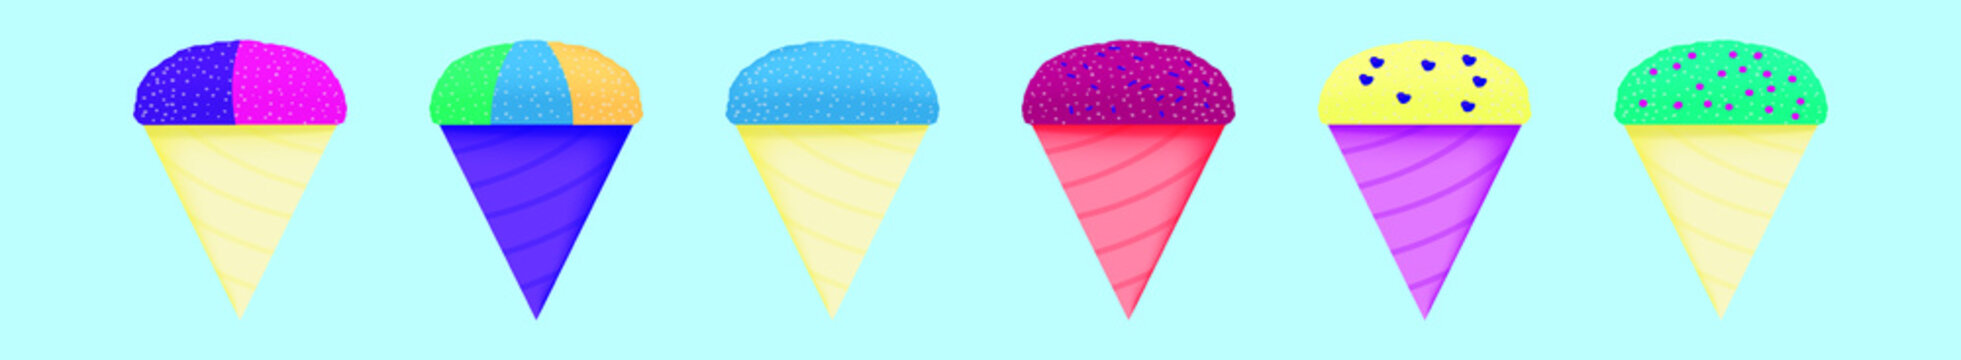 set of snow cone cup cartoon icon design template with various models. vector illustration isolated on blue background